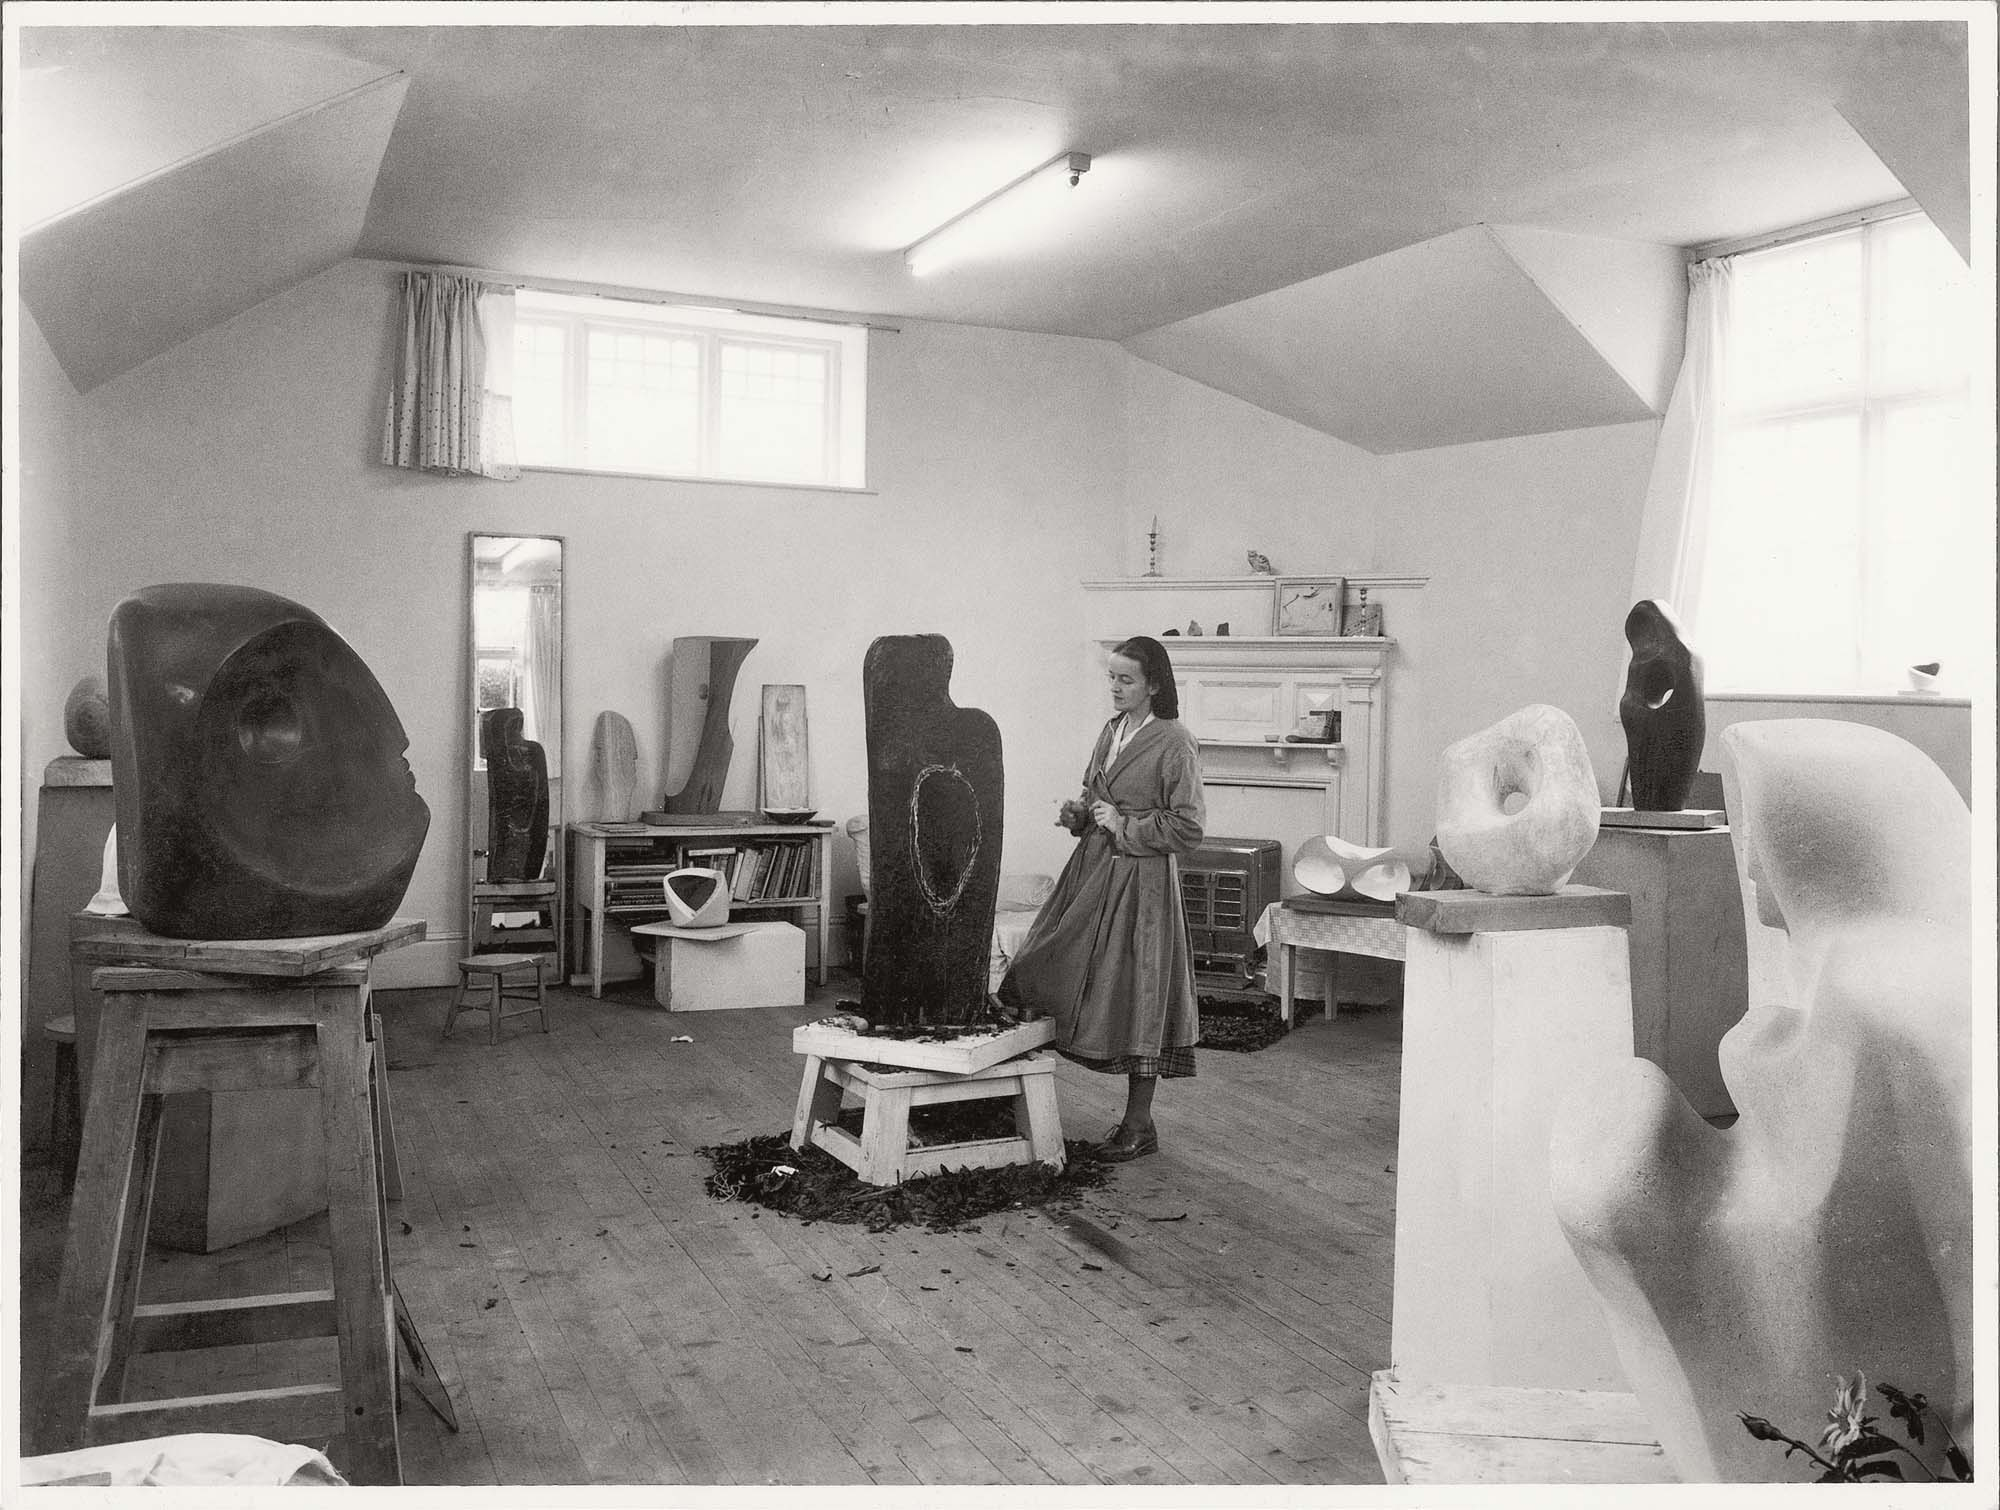 a black and white photo of a woman sculpting a large block in a light and airy studio